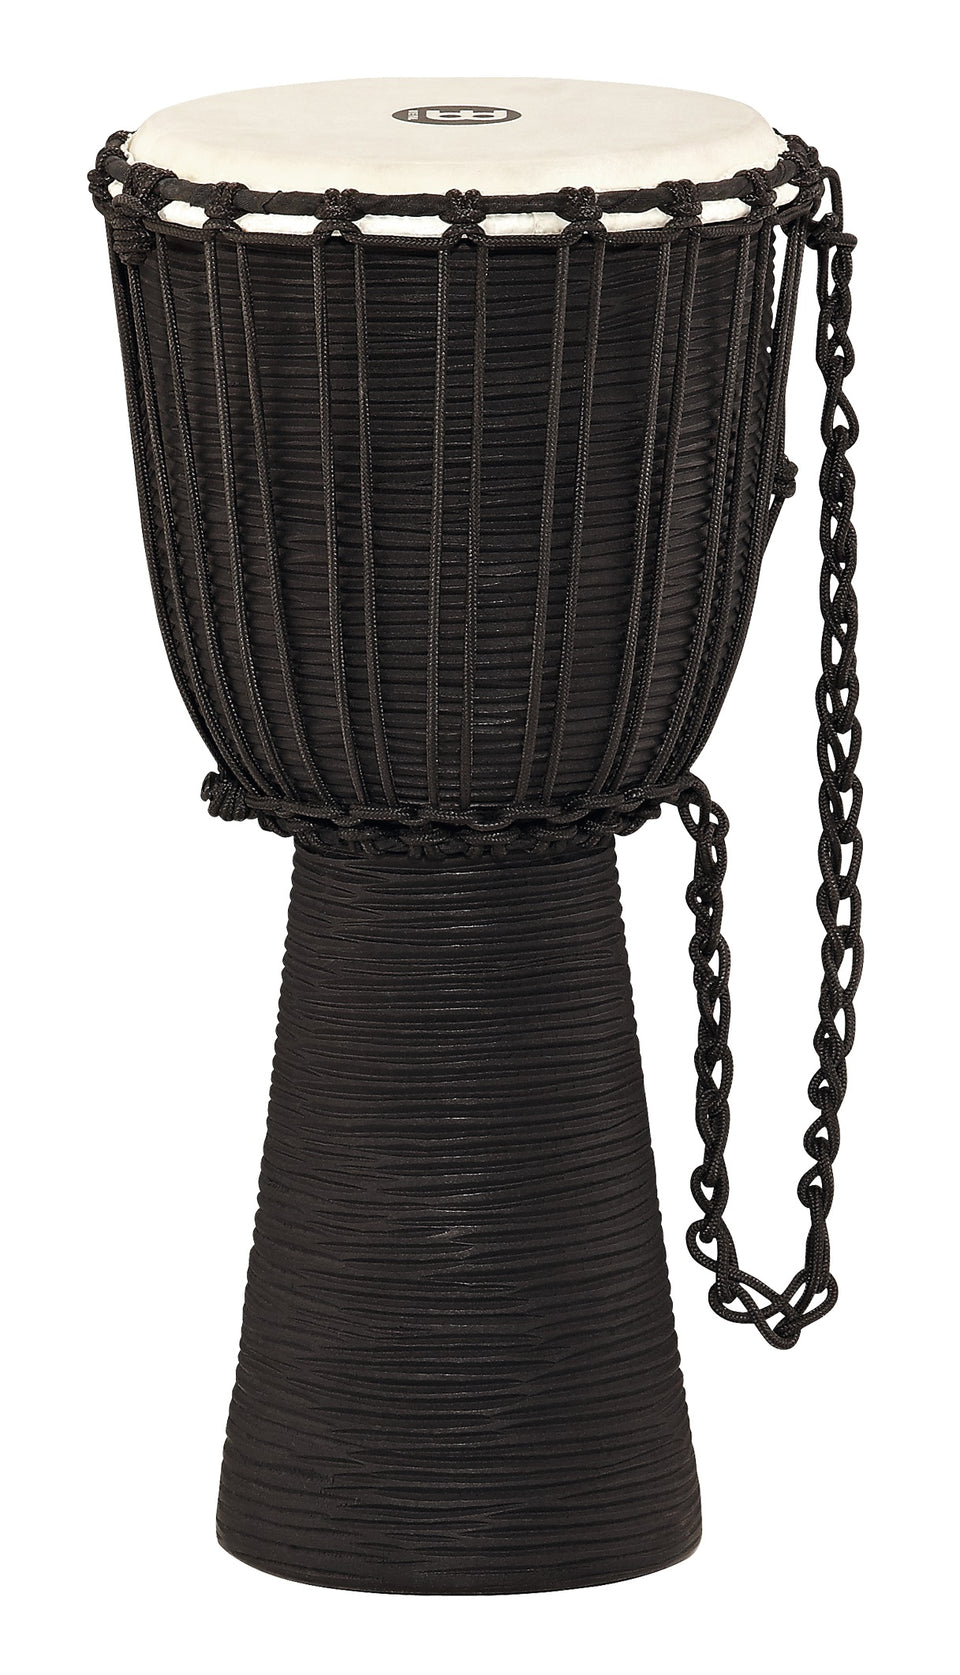 Meinl HDJ3-M Rope Tuned Headliner Series Wood Djembe Black River Series 10""